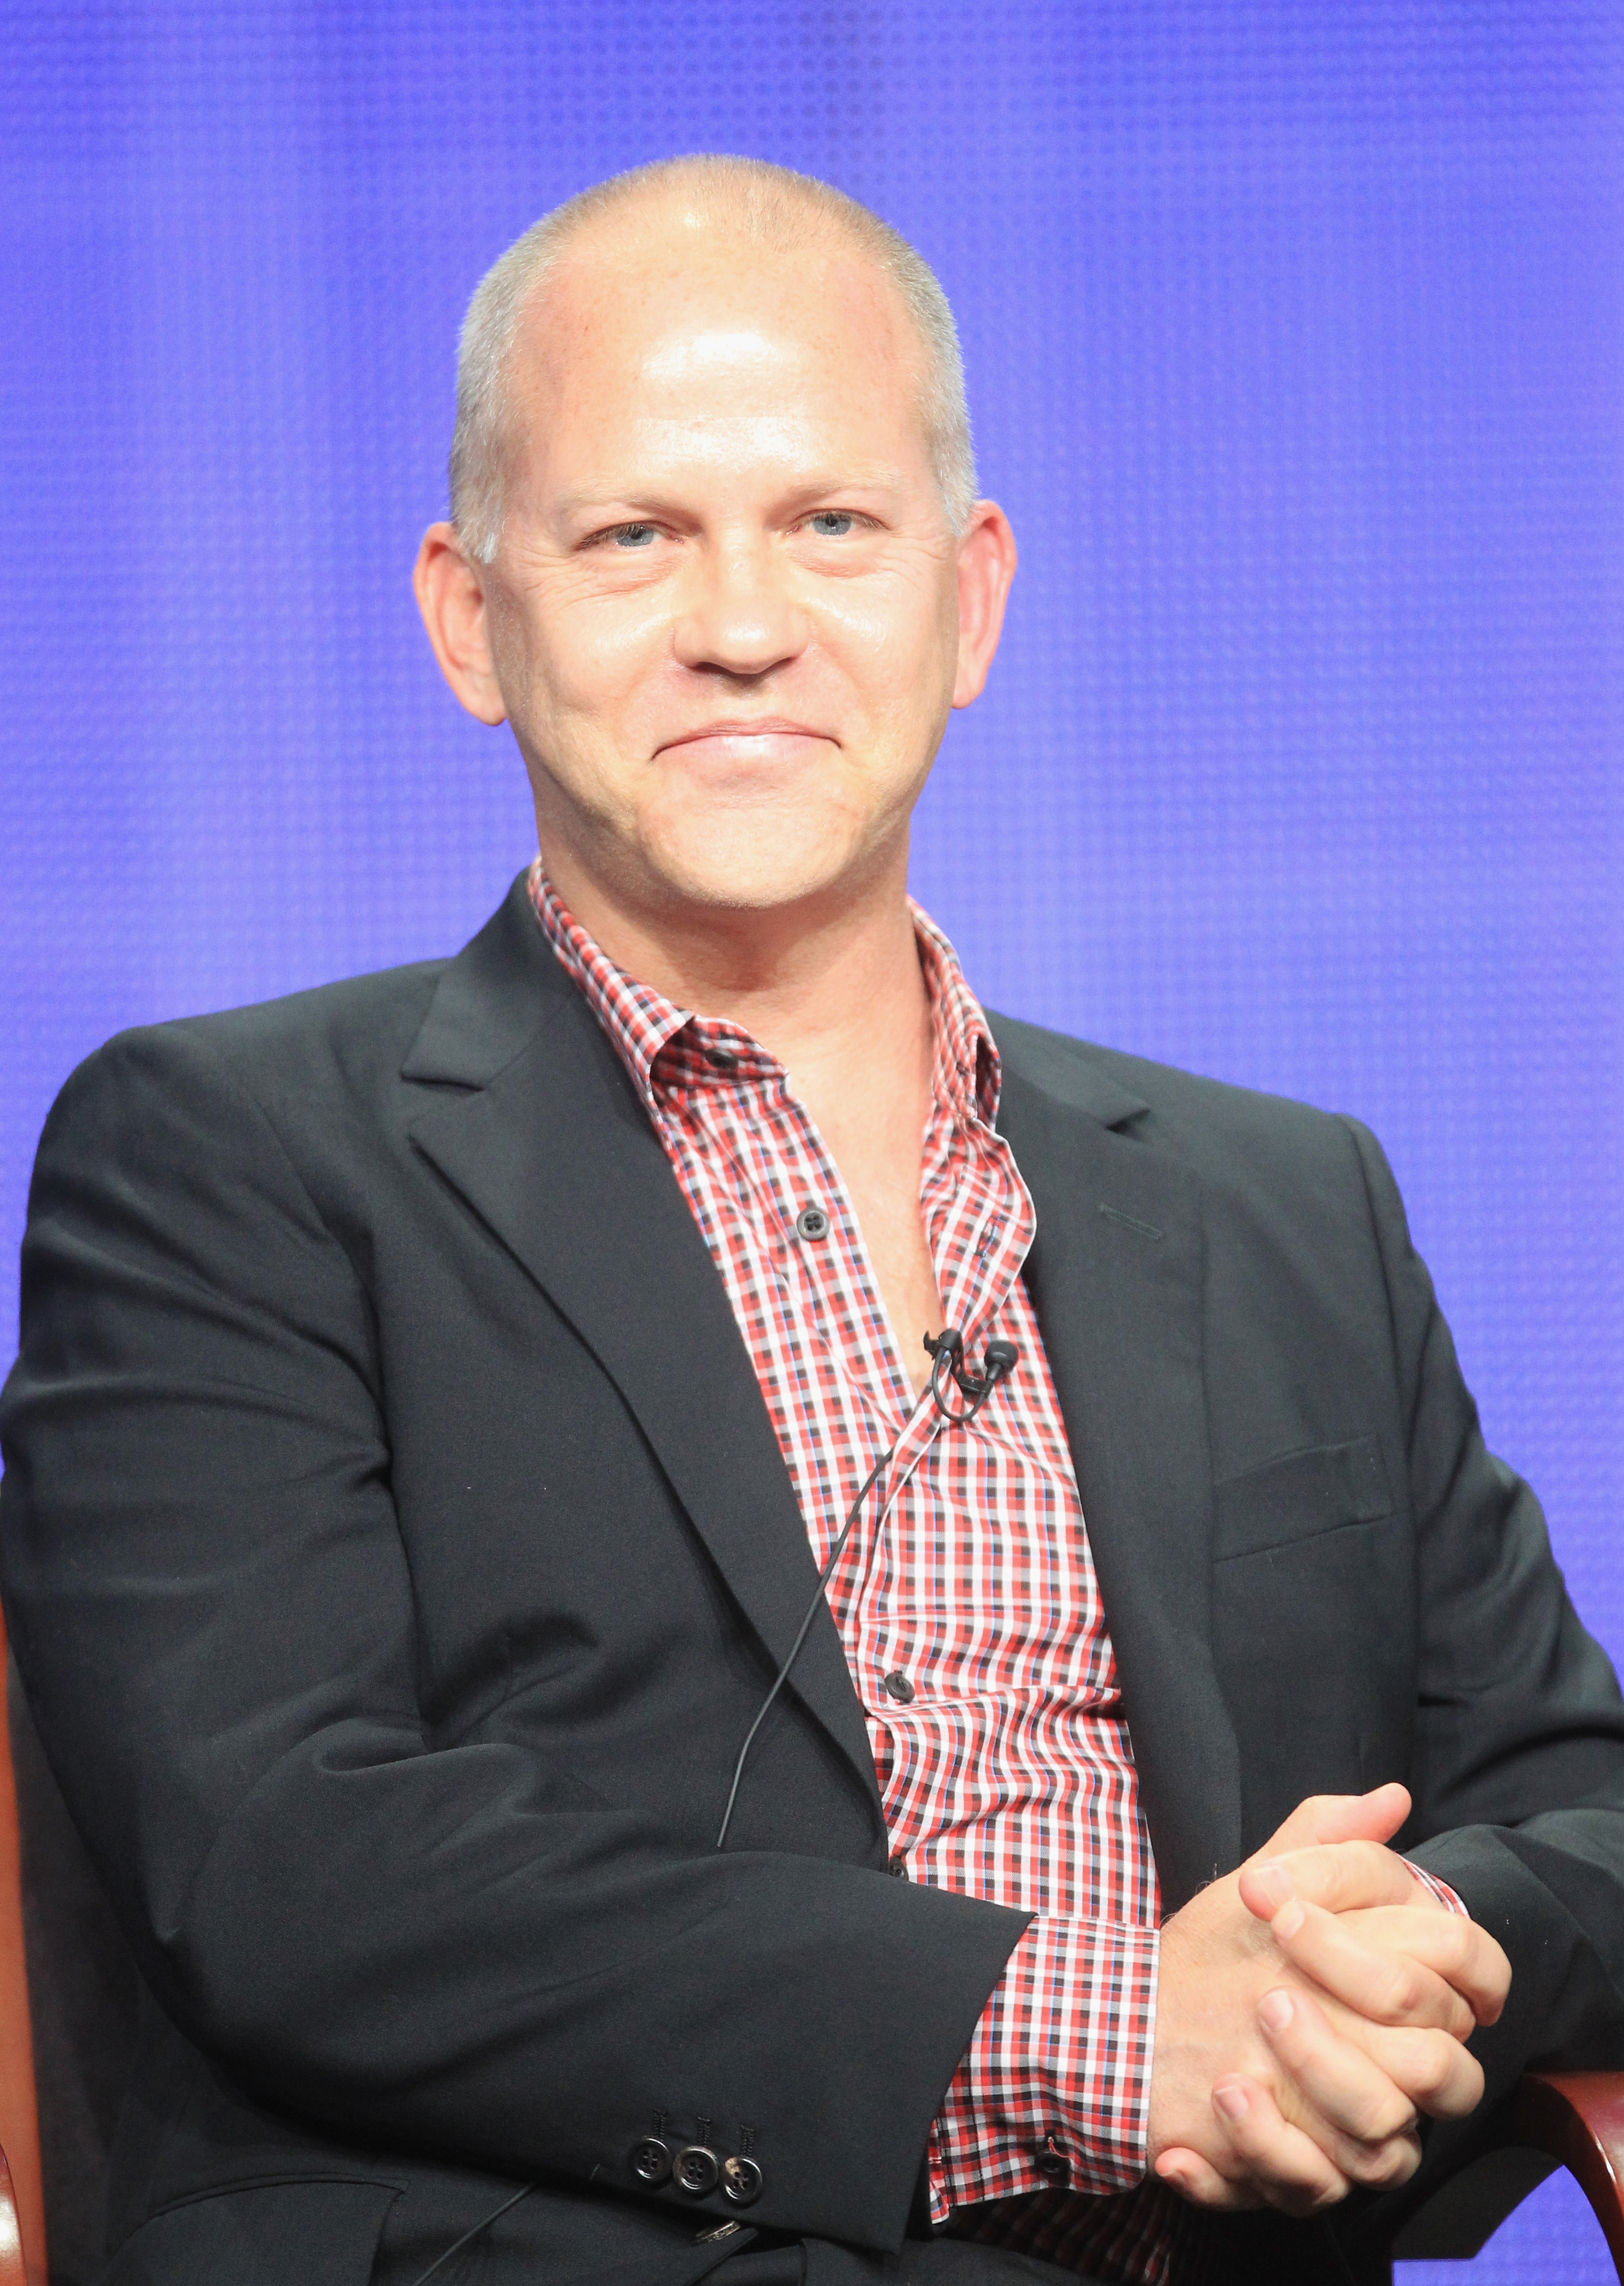 Ryan Murphy told the press that The New Normal is loosely based on his life.